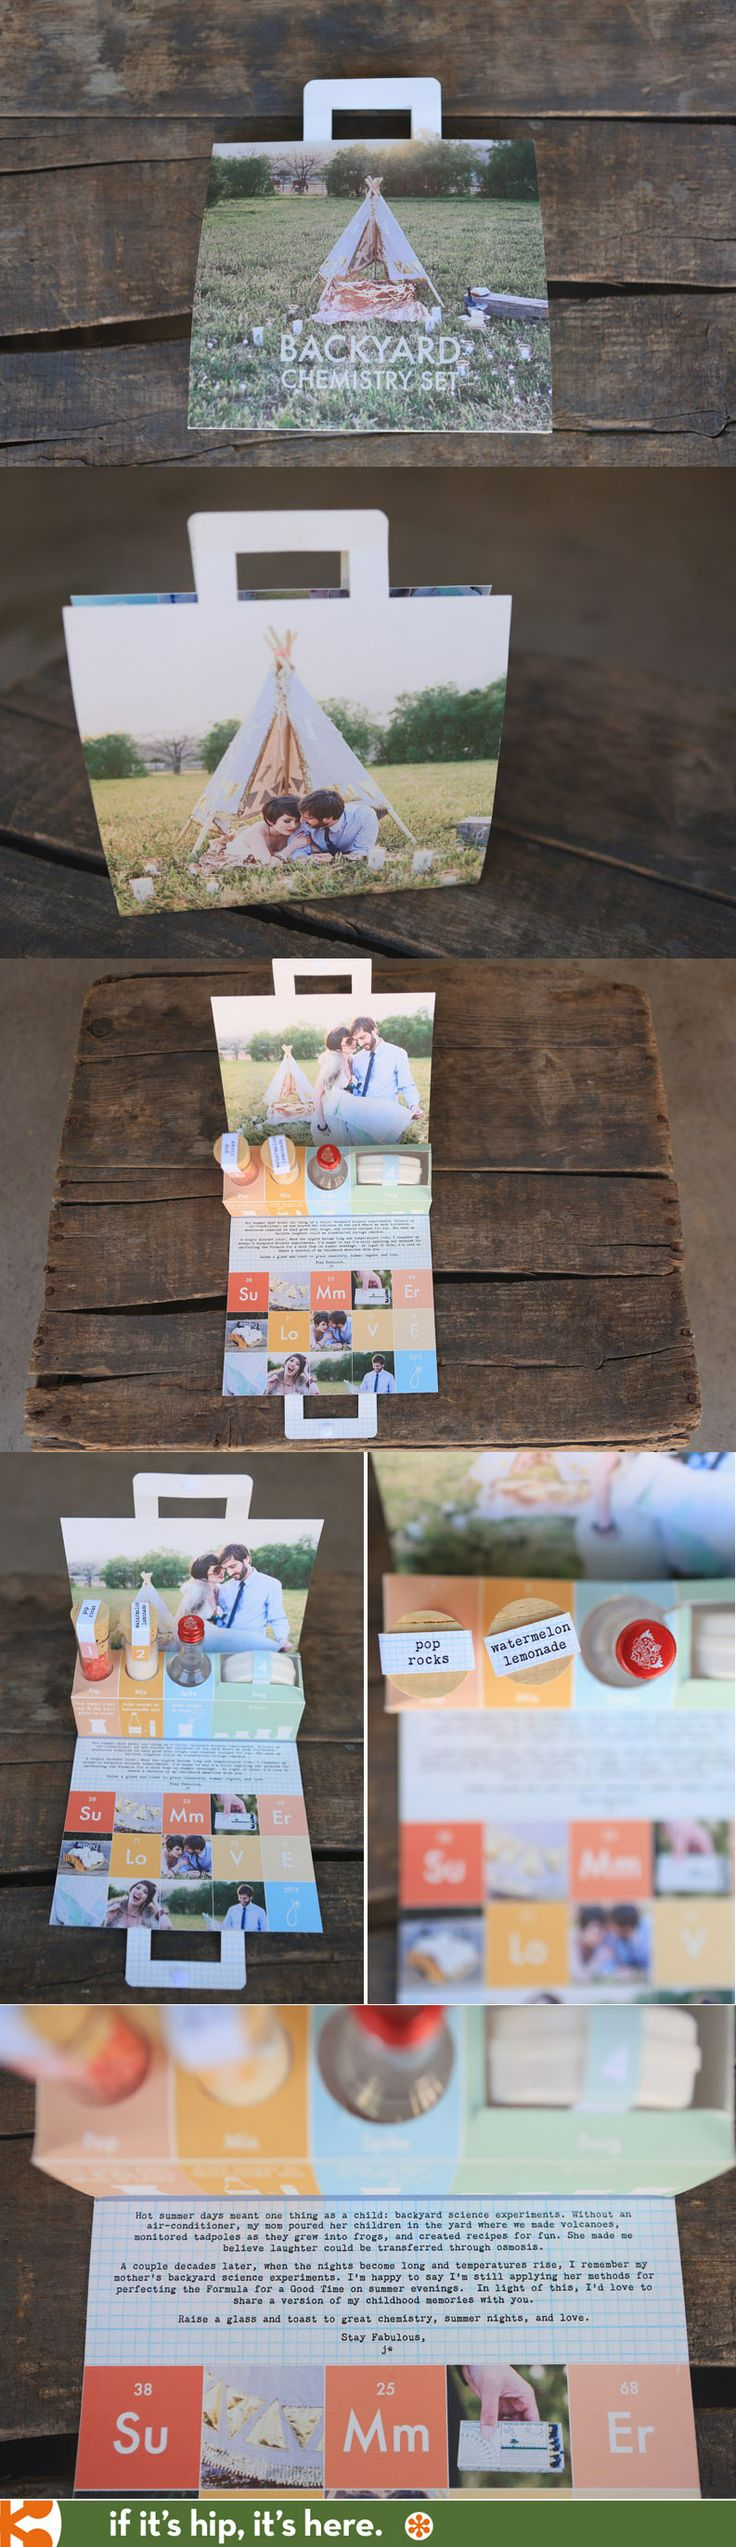 The Backyard Chemistry Kit was created by photographer Jasmine Star as a gift for her clients. A shout out to @Joanne Hunter Hines for bringing this to my attention.